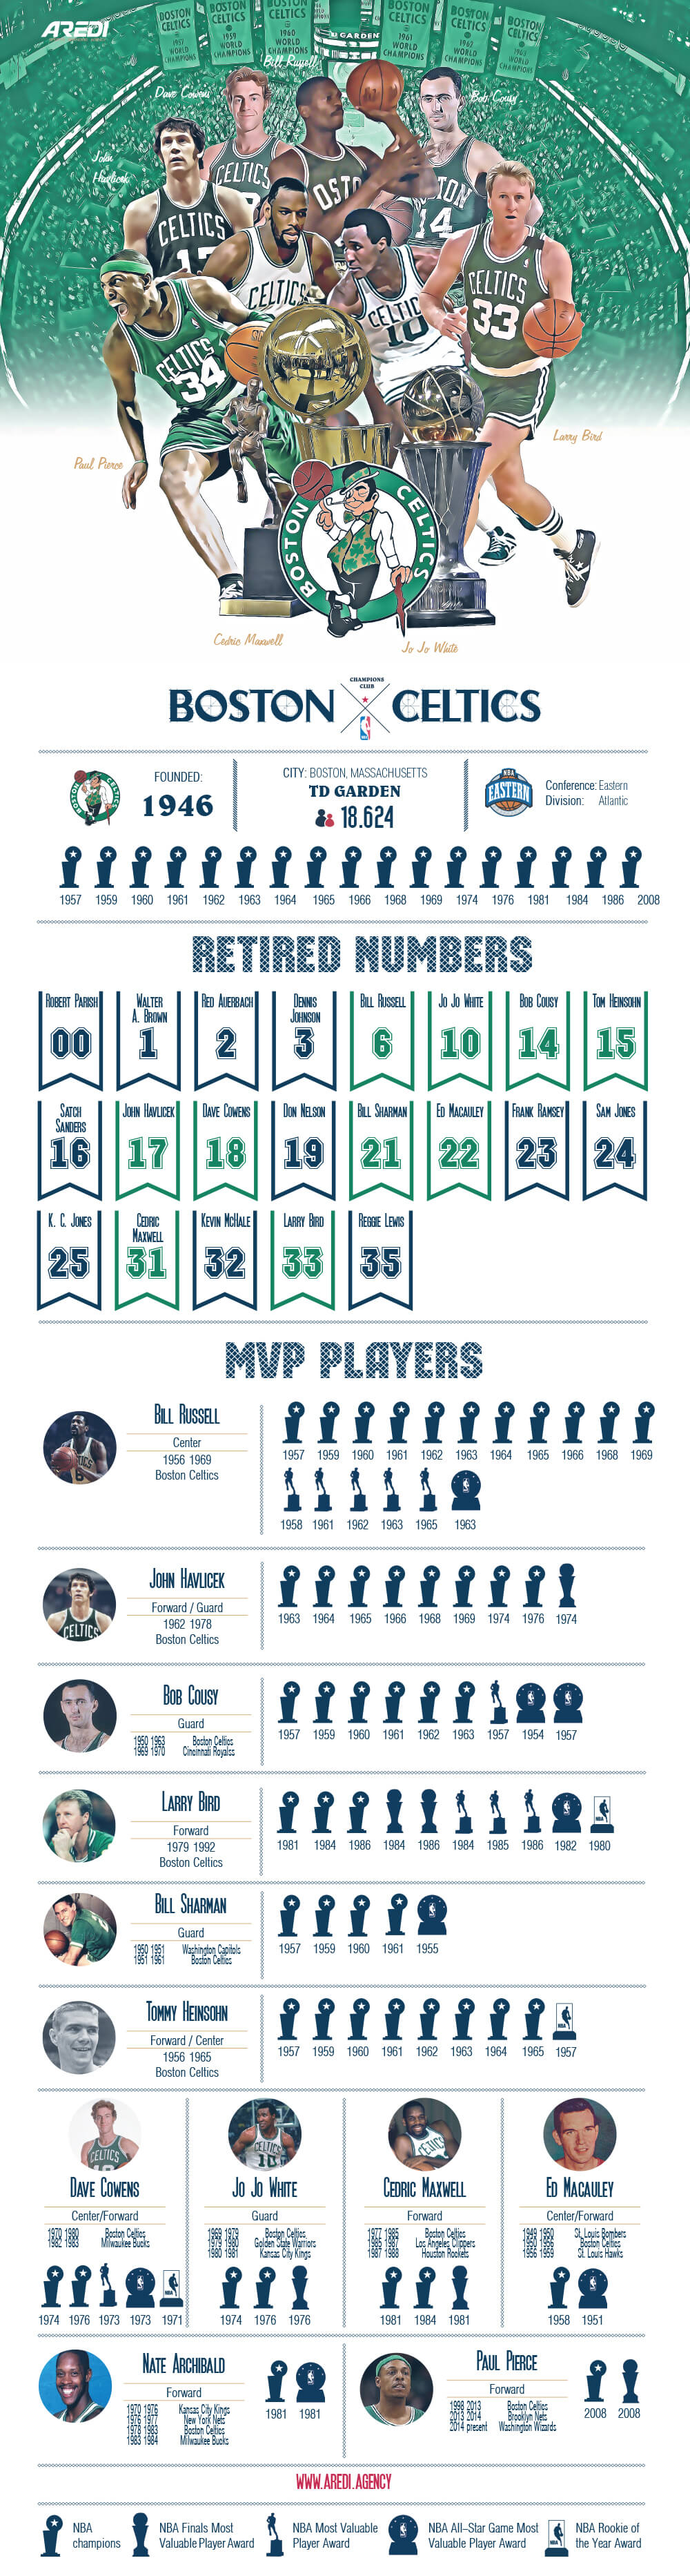 The best players in the history of the Boston Celtics